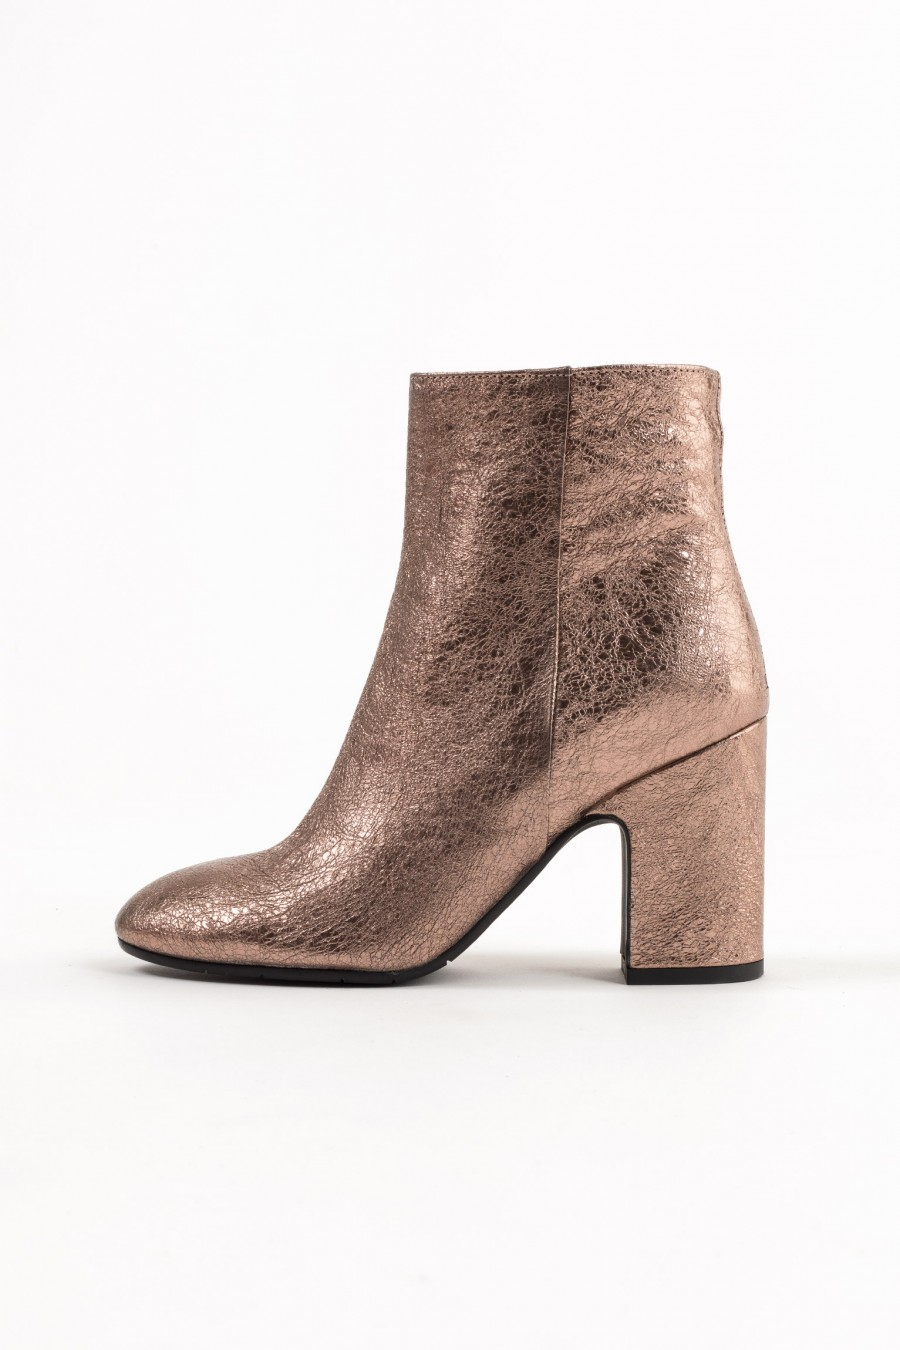 Lazzari pink metallic leather ankle boots